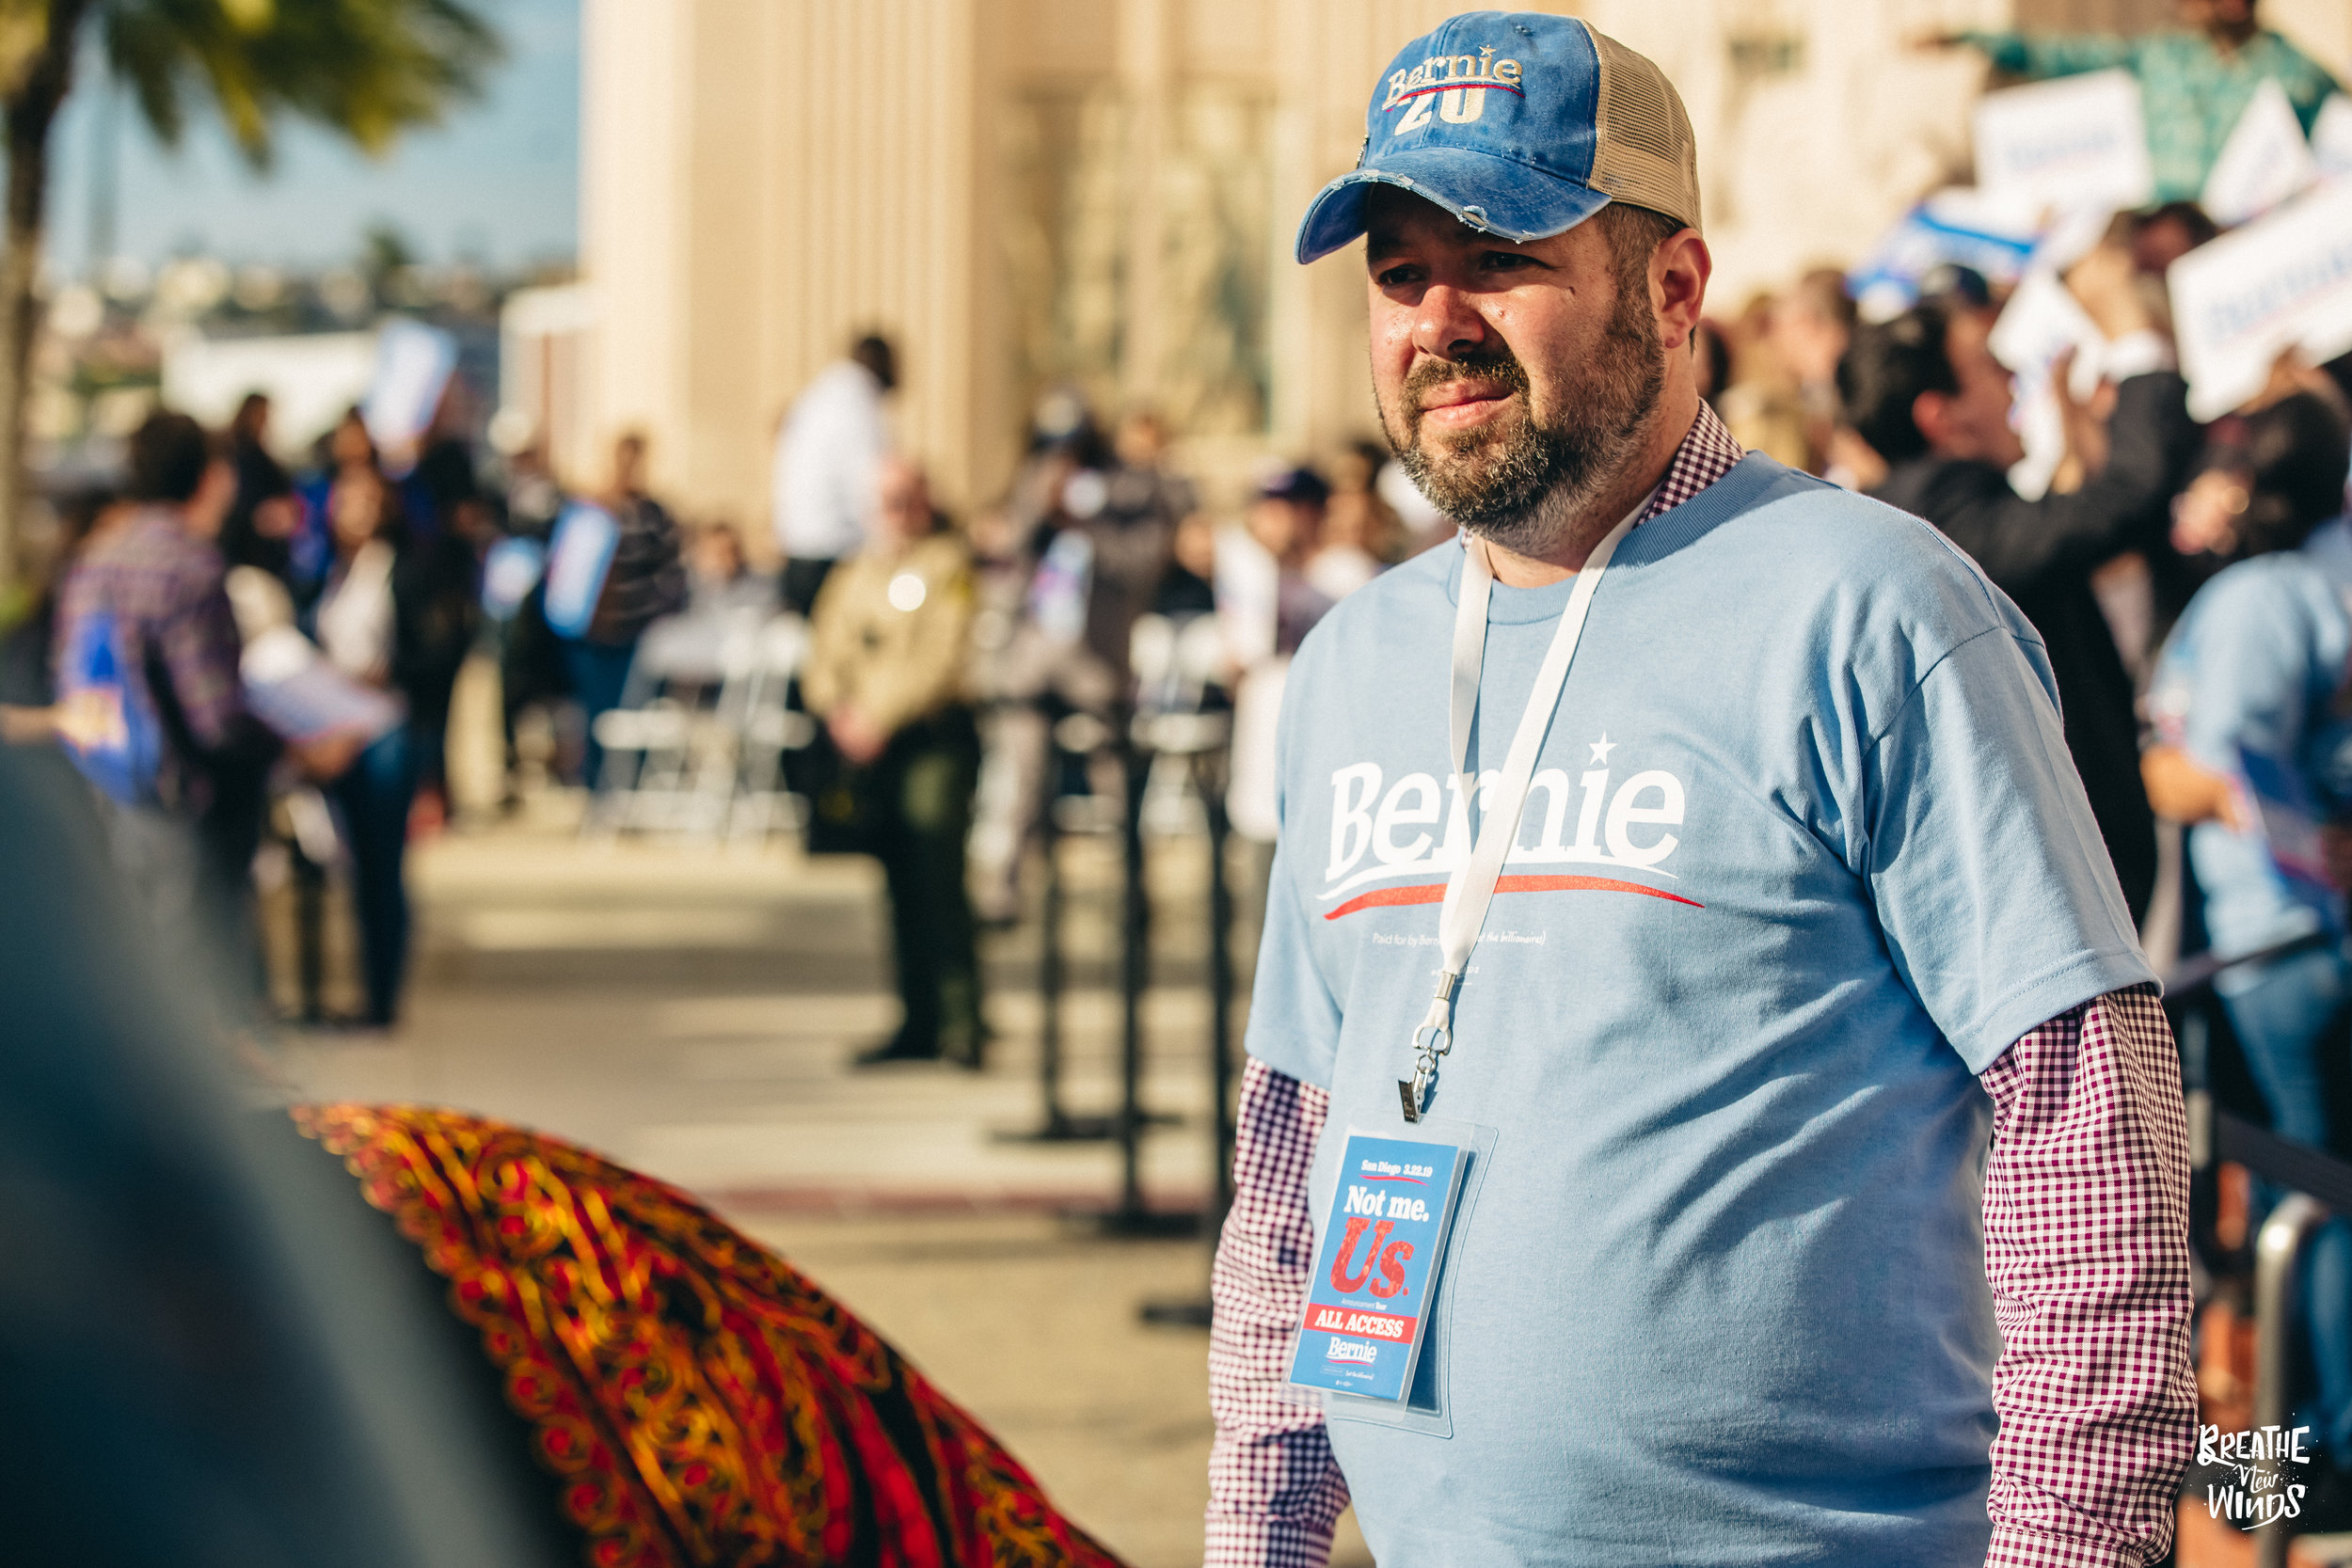 BernieInSD_22March2019-Crowd (55 of 94).jpg